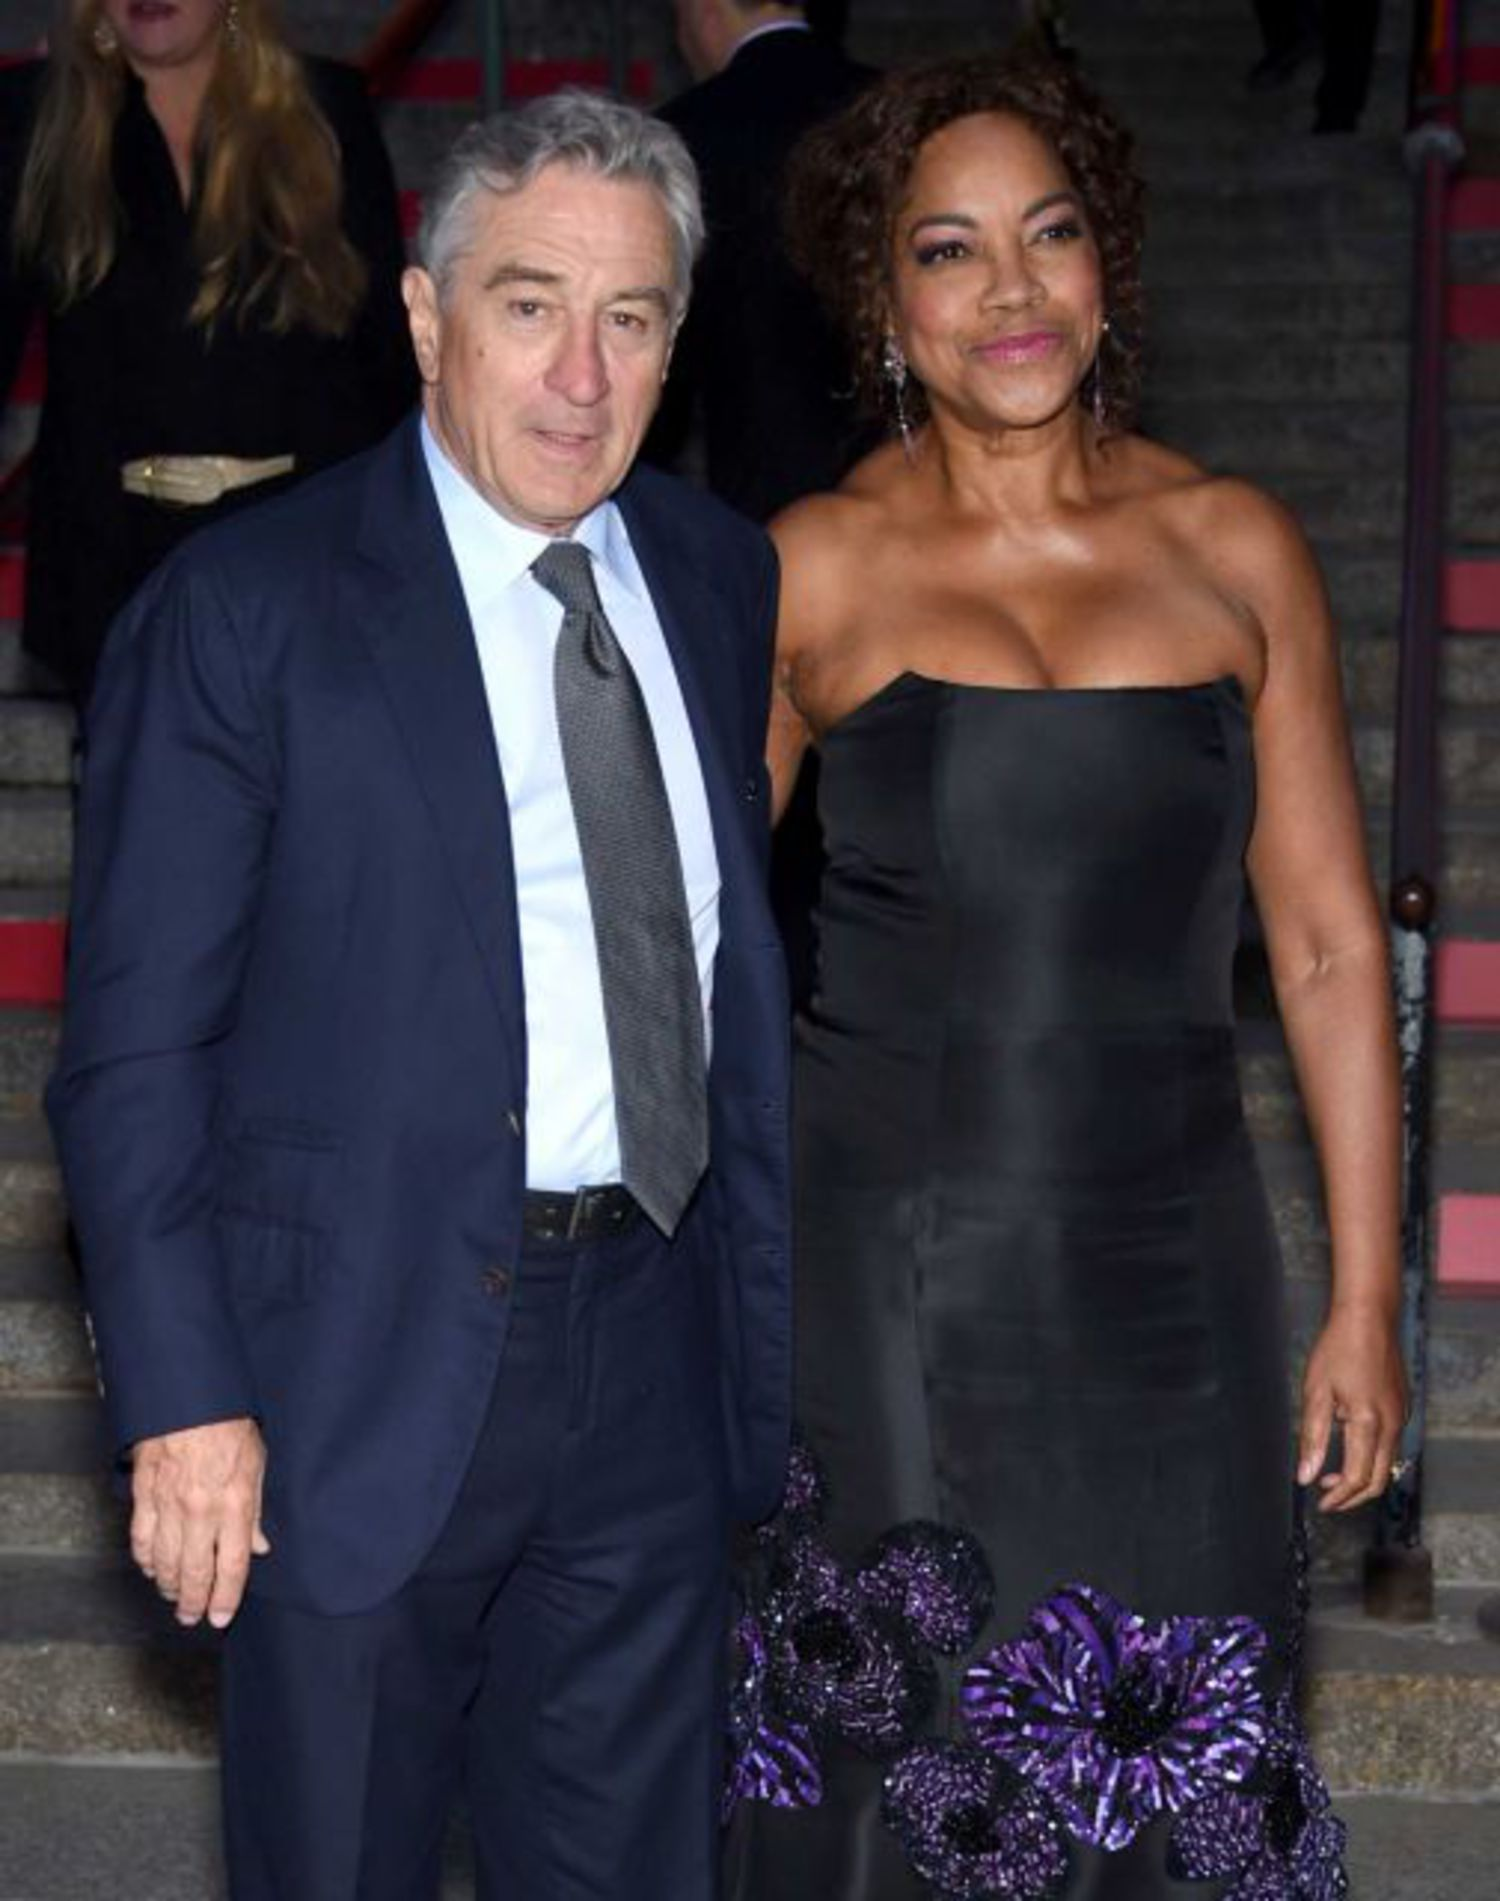 Tribeca Film Festival co-founder Robert De Niro and wife Grace Hightower attend the annual Vanity Fair Tribeca Film Festival kick-off party at the State Supreme Courthouse in Manhattan on Tuesday, April 14, 2015.